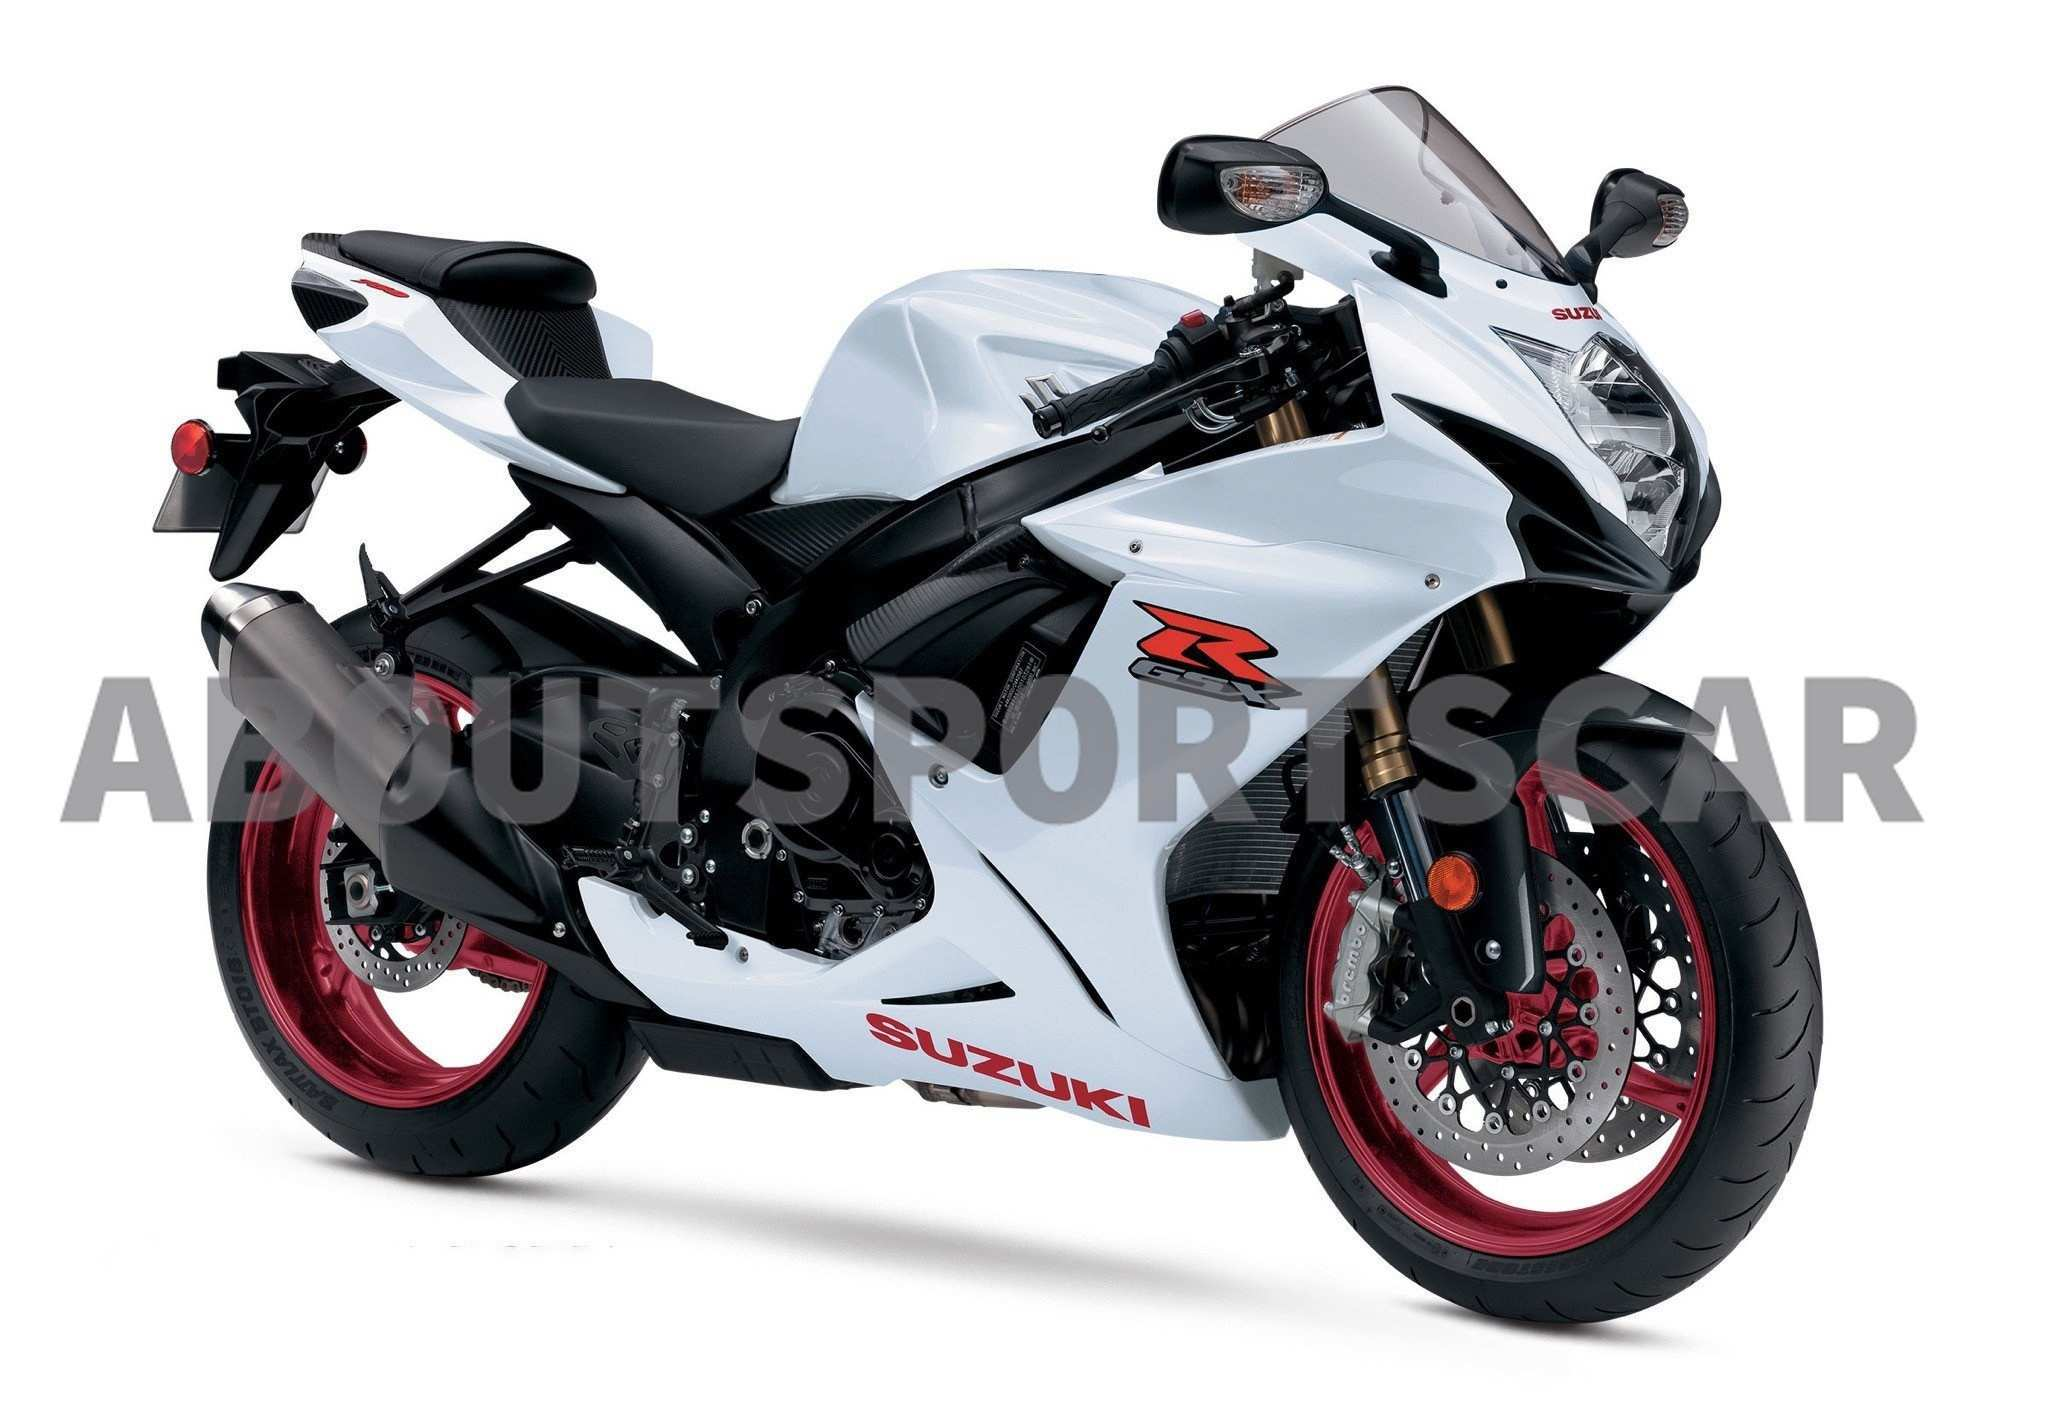 88 New 2019 Suzuki Gsx R750 Spesification with 2019 Suzuki Gsx R750